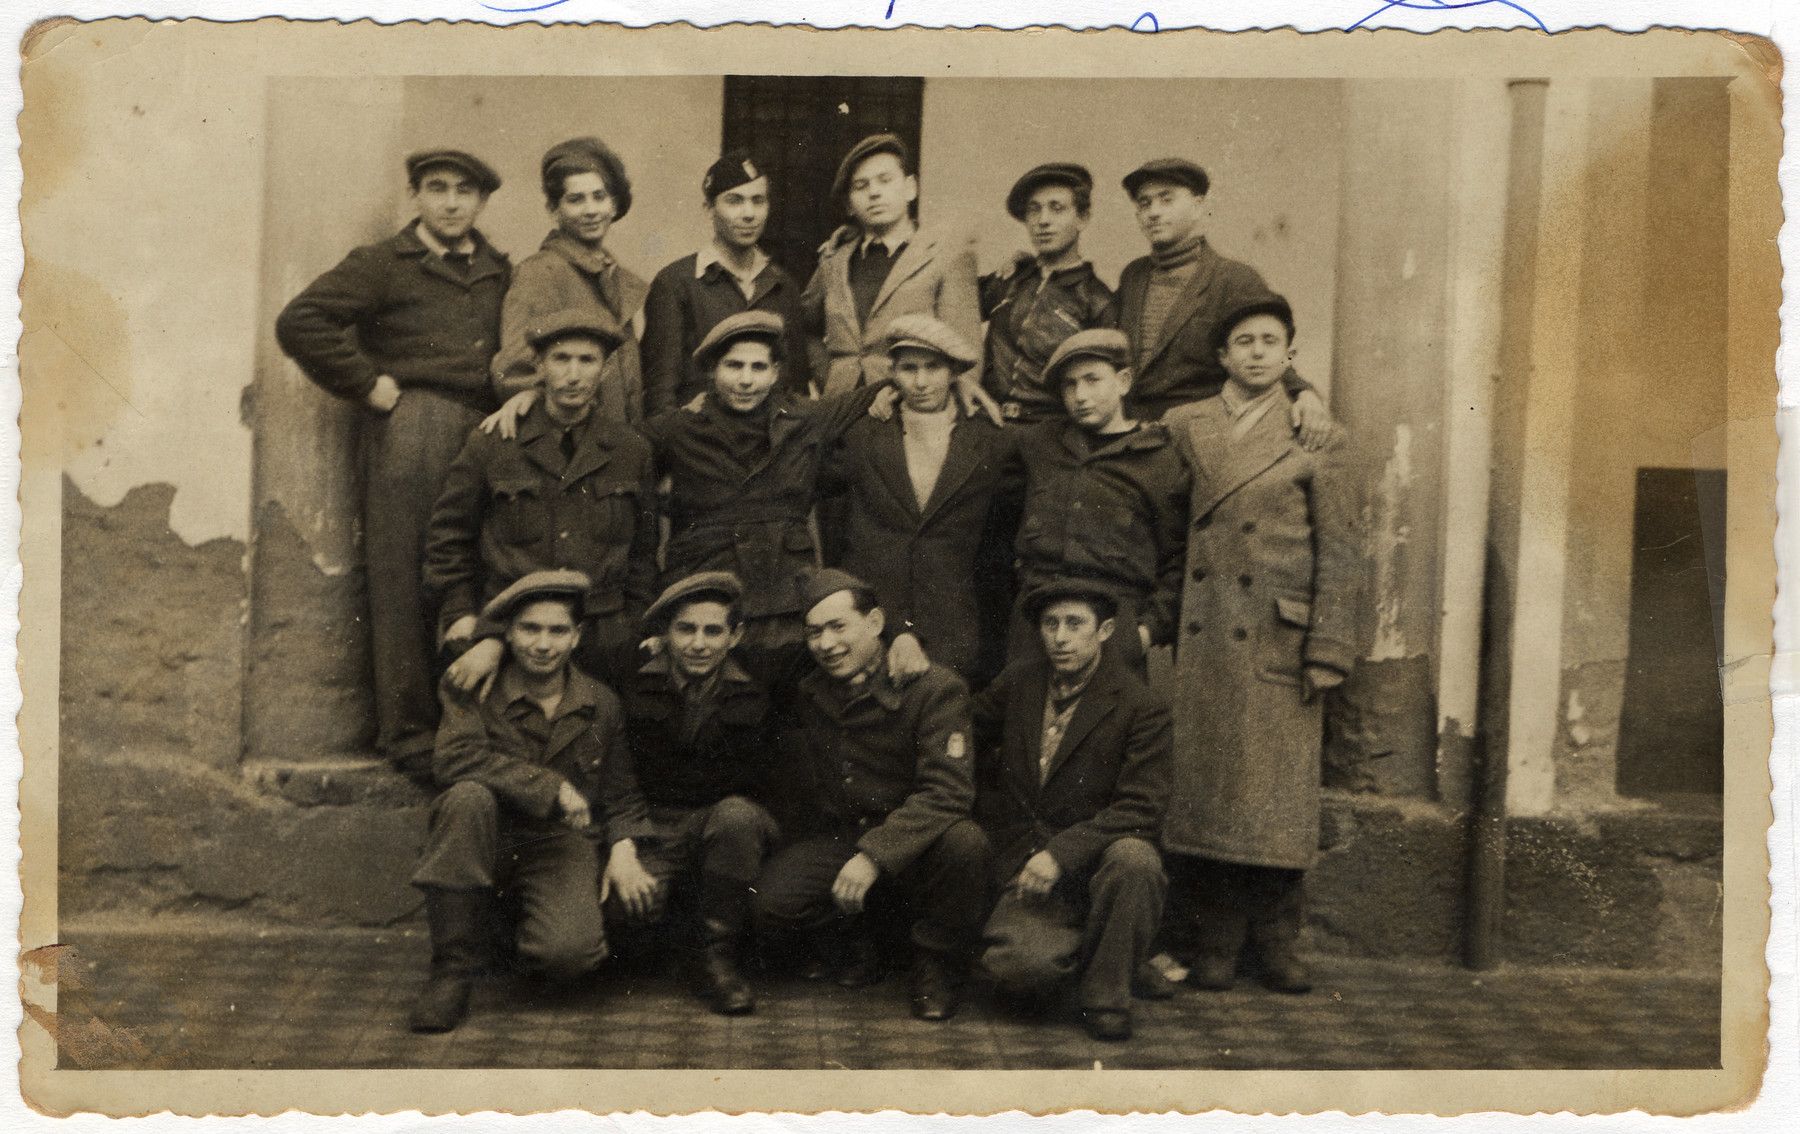 Group portrait of displaced persons in Kibbutz Mekor Baruch, a Poal Mizrachi fishing hachshara in Bacoli, Italy.  Pictured from left to right are (first row): Meir Weiss, unknown, Ben-Zion Gasner, and unknown; (second row) Mangel, Eliezer Majerovic, Shmuelevitz, Shmuelevitz and Moshe Fruchter; (third row): Moshe Bergerm Mordechai Feld, David Weiss, Zvi Rengel, unknown, and Yona Kalosh.